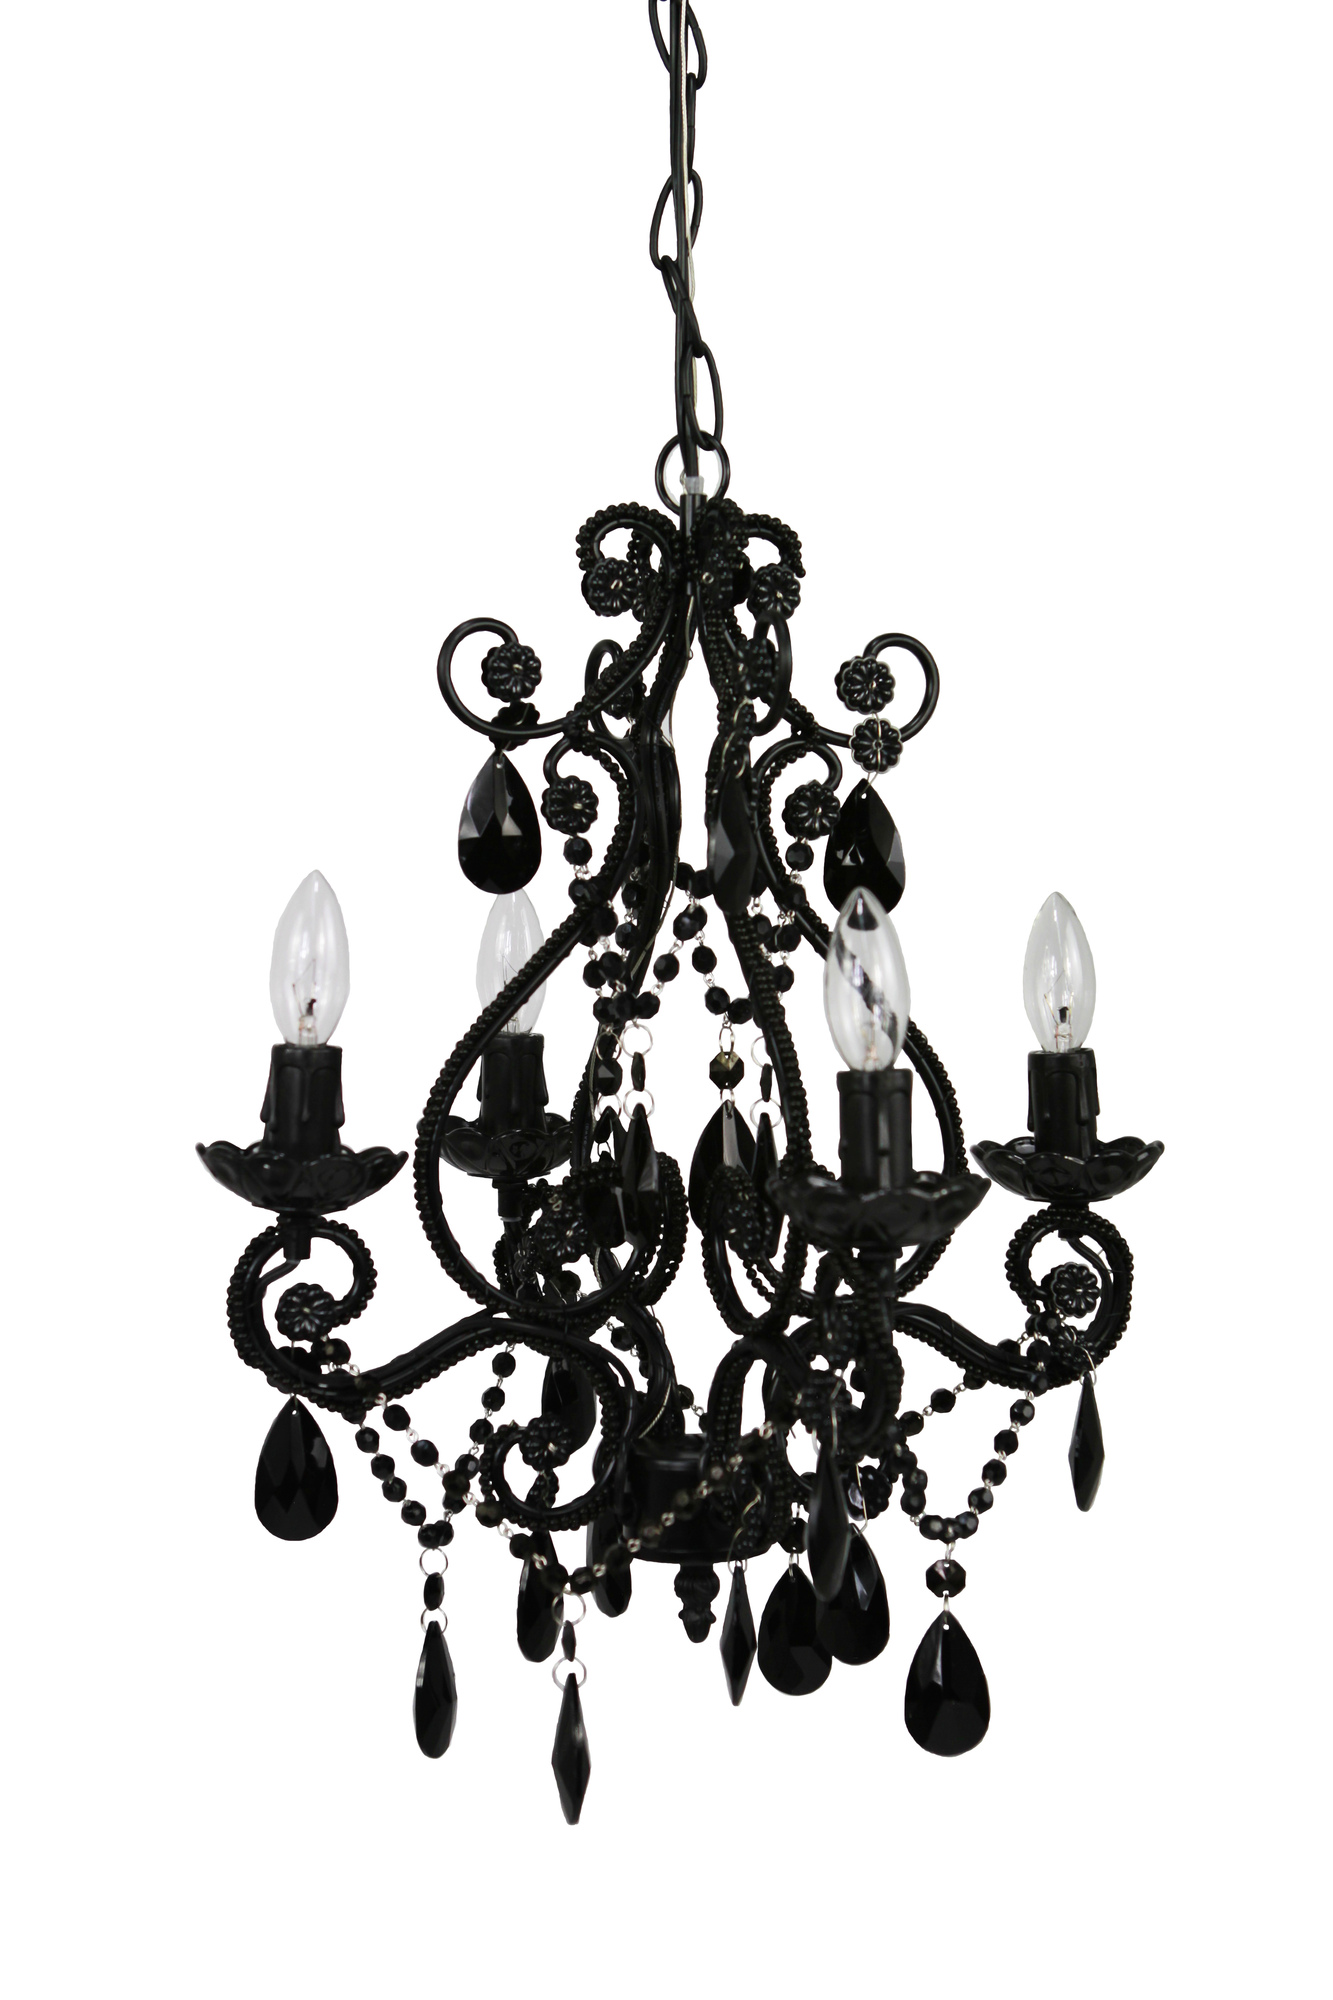 Remarkable Mini Black Chandelier 1333 x 2000 · 393 kB · jpeg